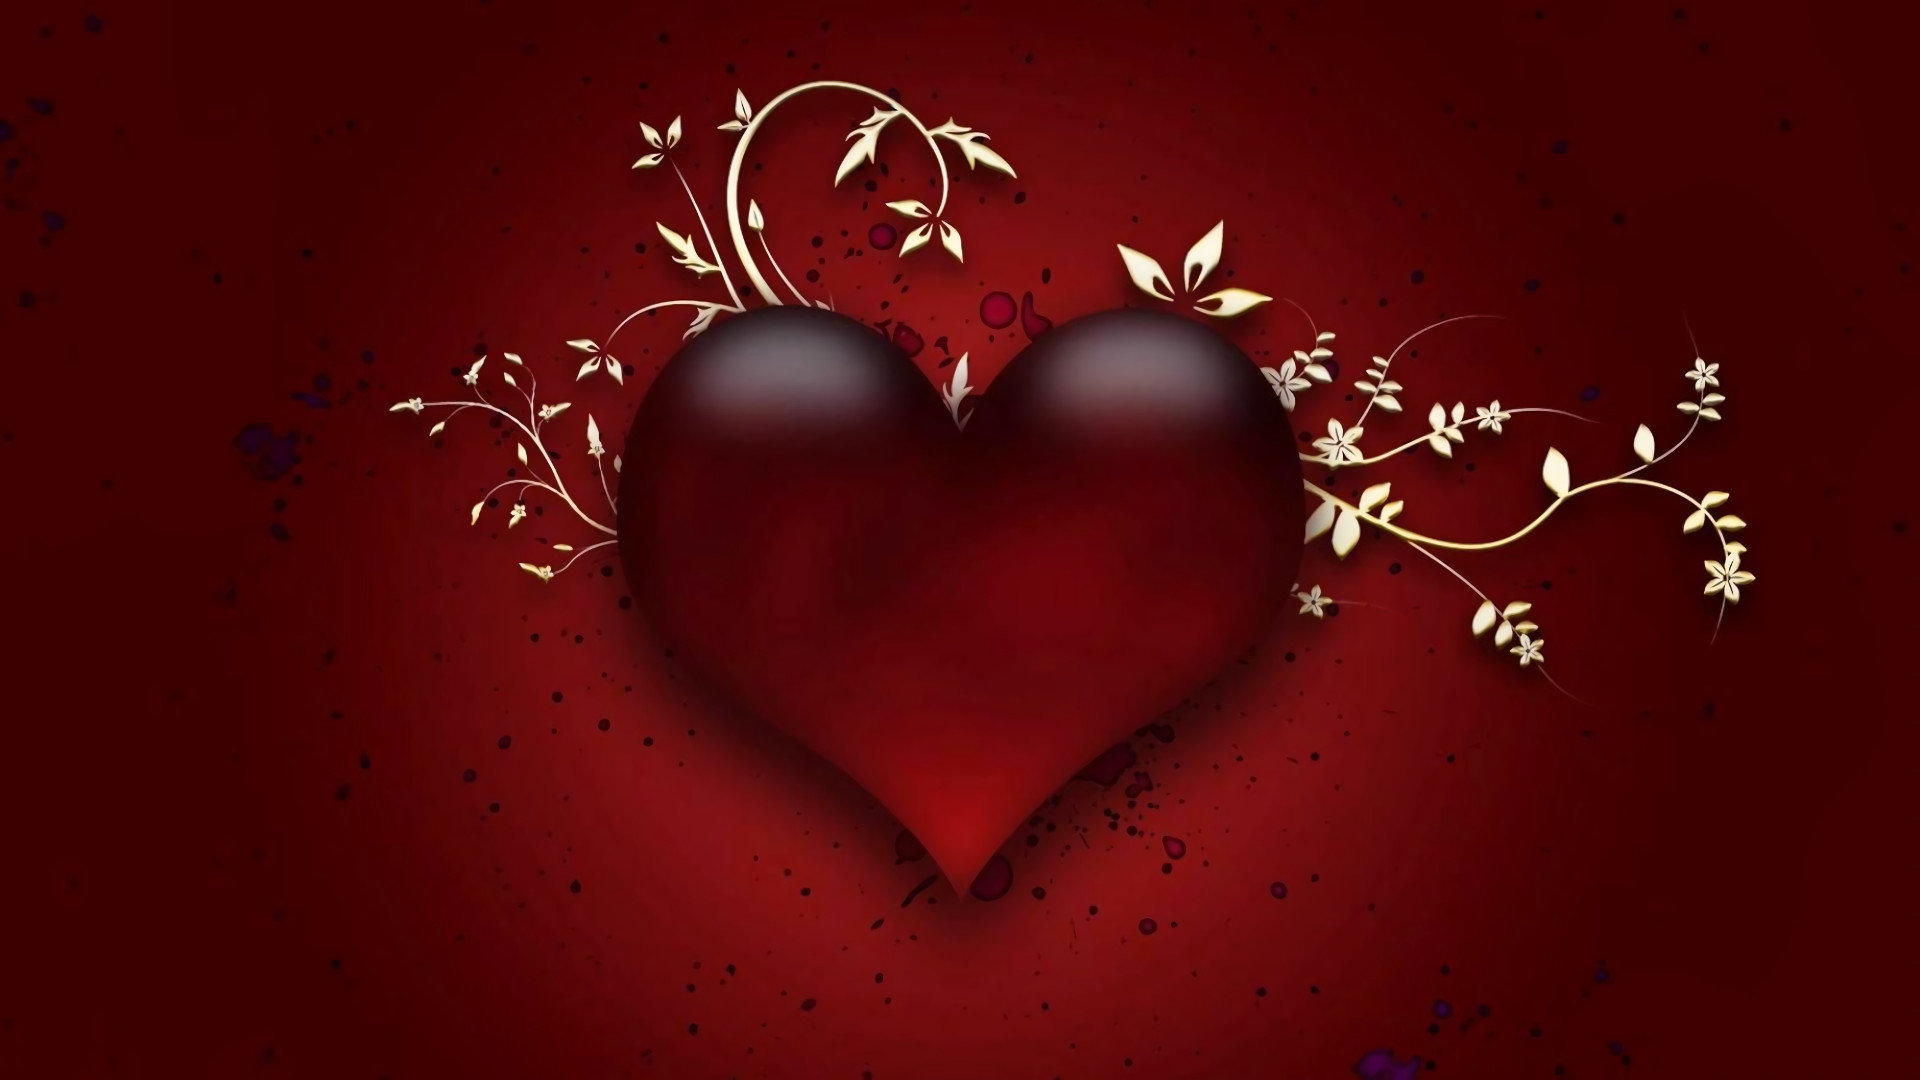 Download Hd 1080p Heart Pc Wallpaper Id 209249 For Free